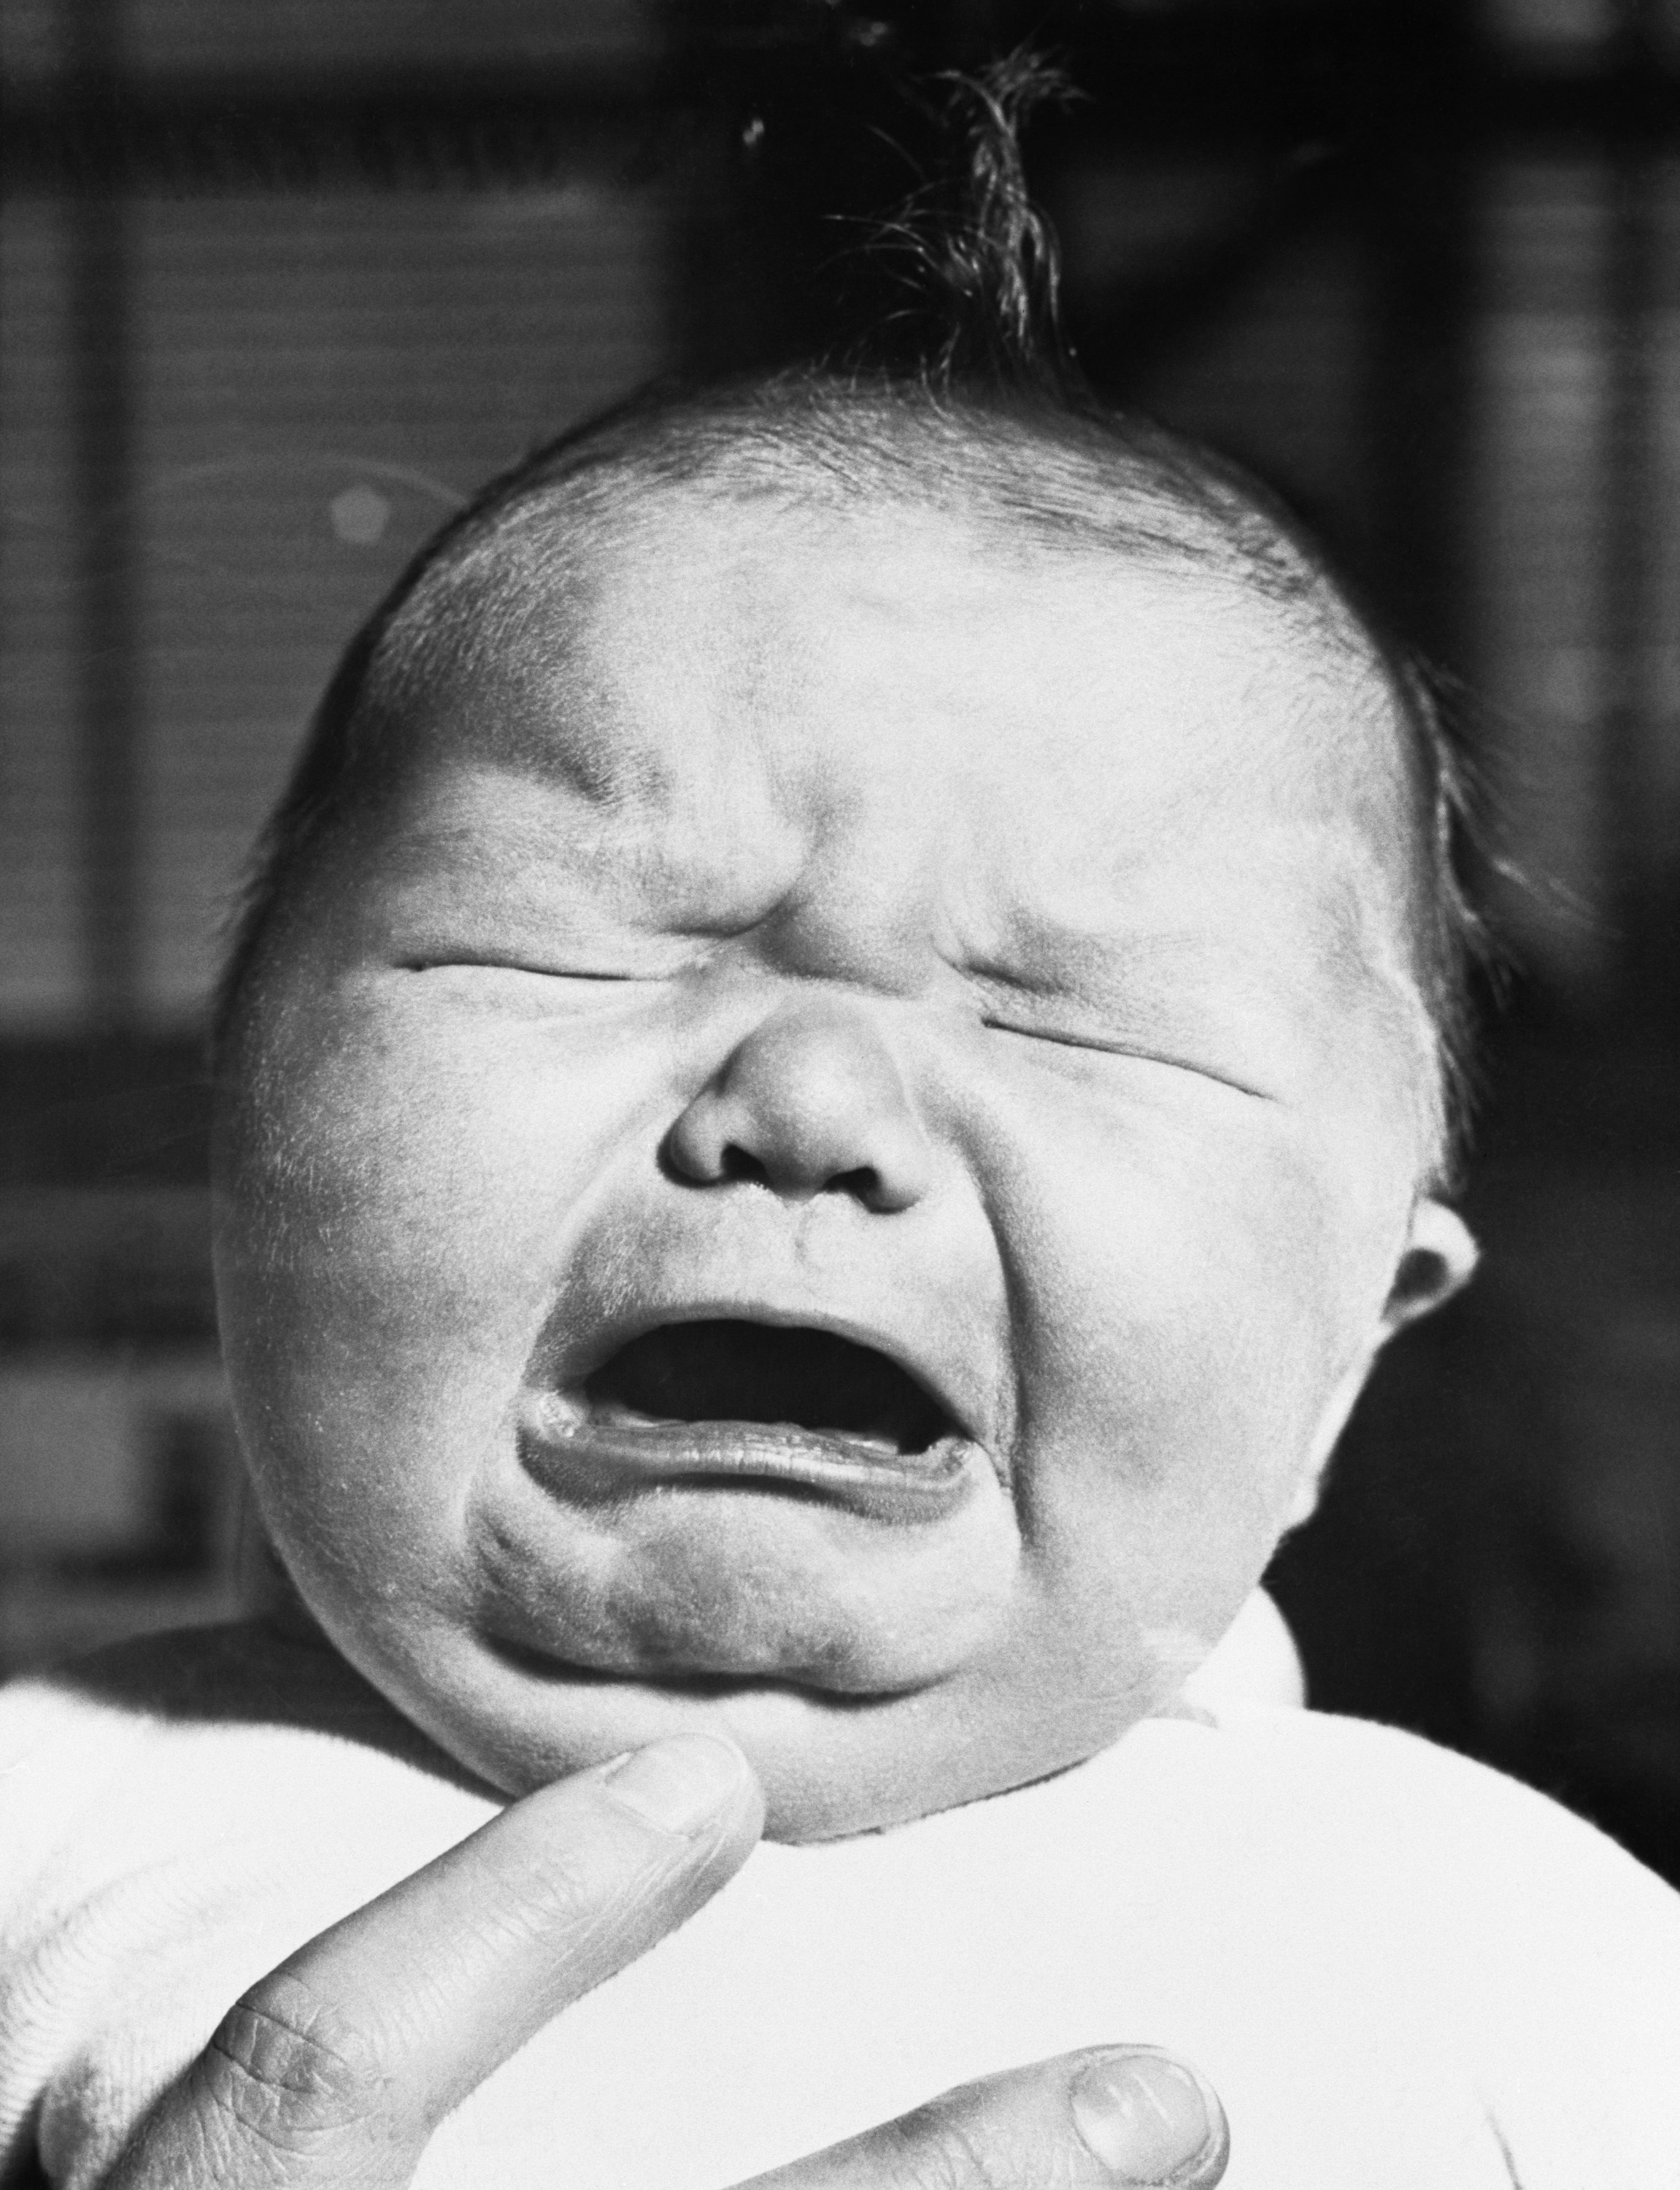 A large baby cries